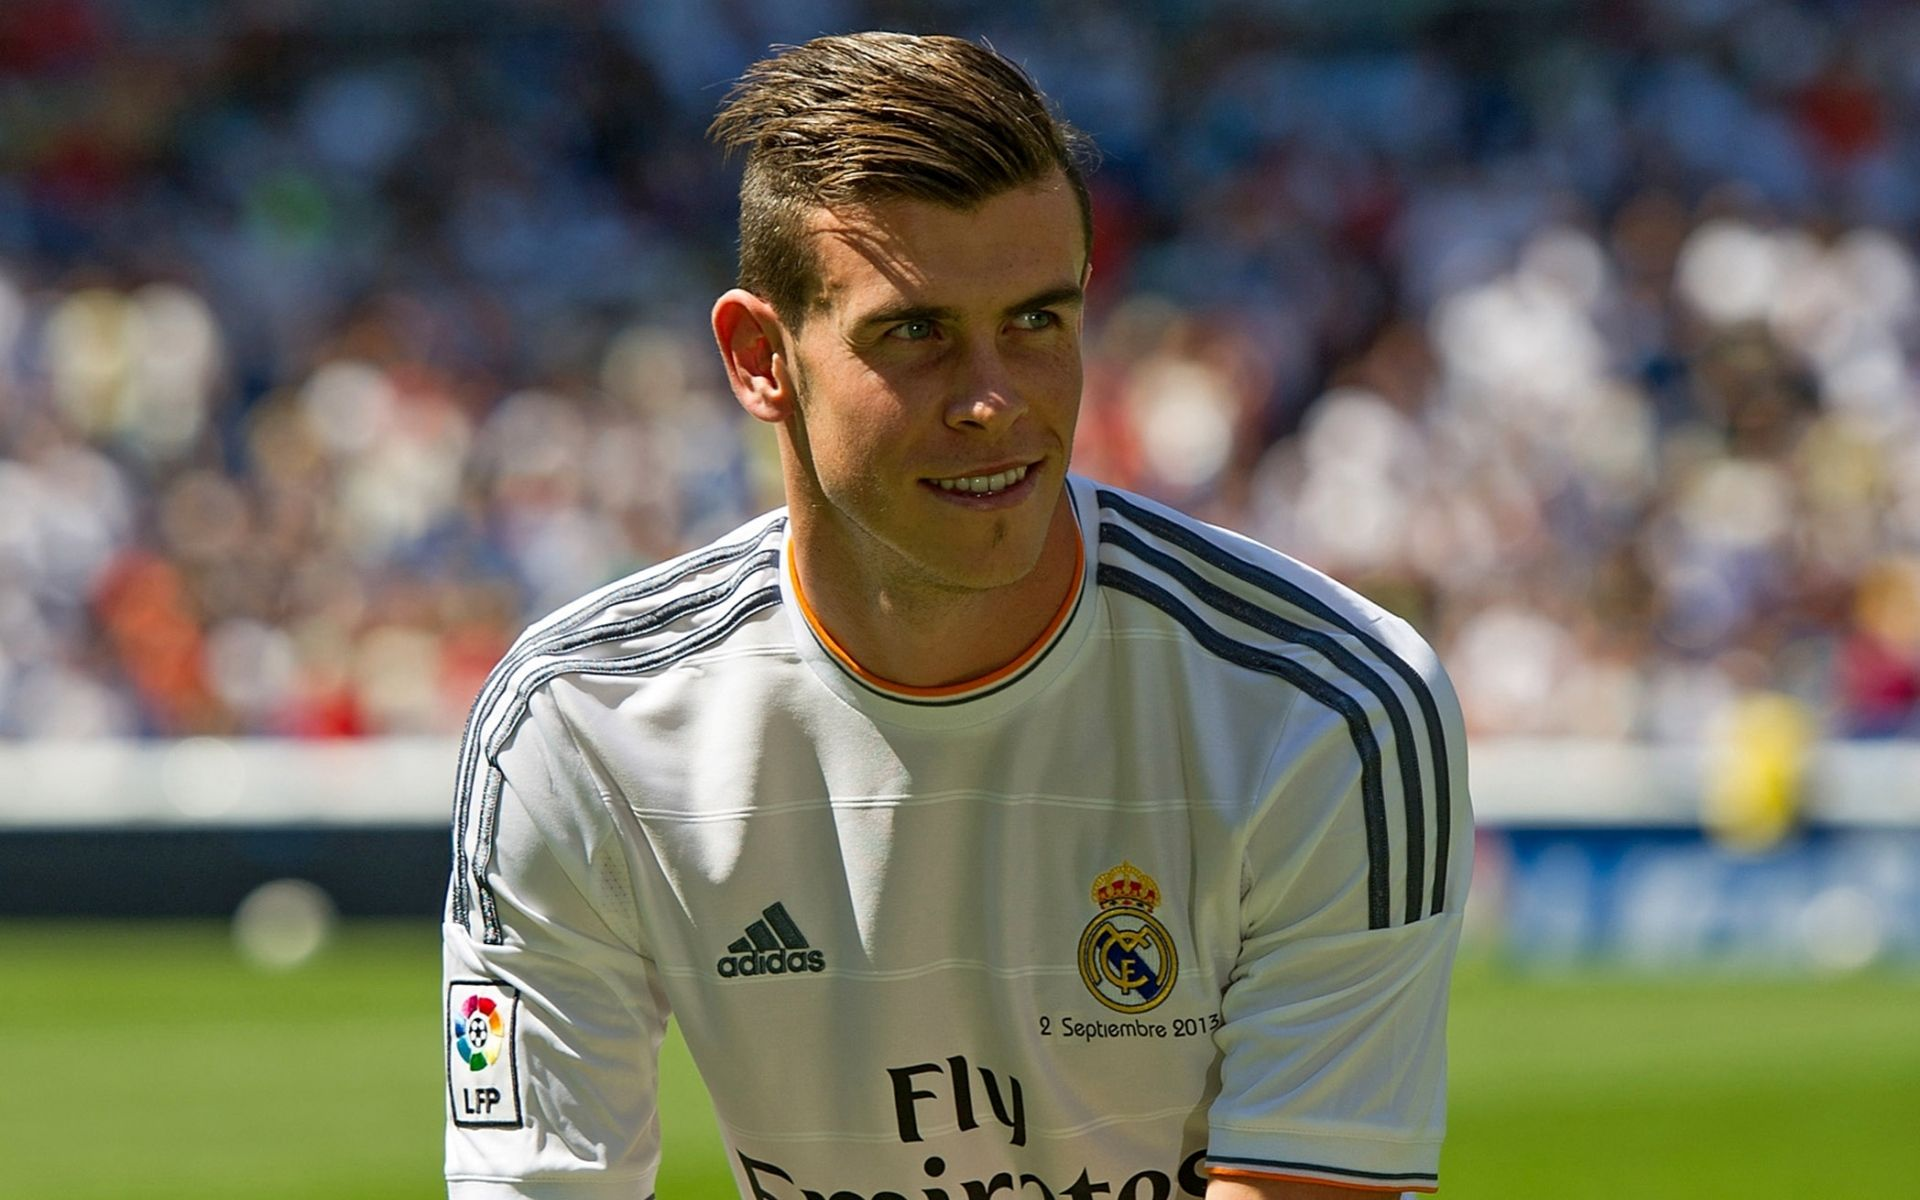 Enjoy Our Newest Photo Gallery Of Gareth Bale Wallpapers Download These New Gareth Bale Pho Soccer Player Hairstyles Soccer Players Haircuts Soccer Hairstyles